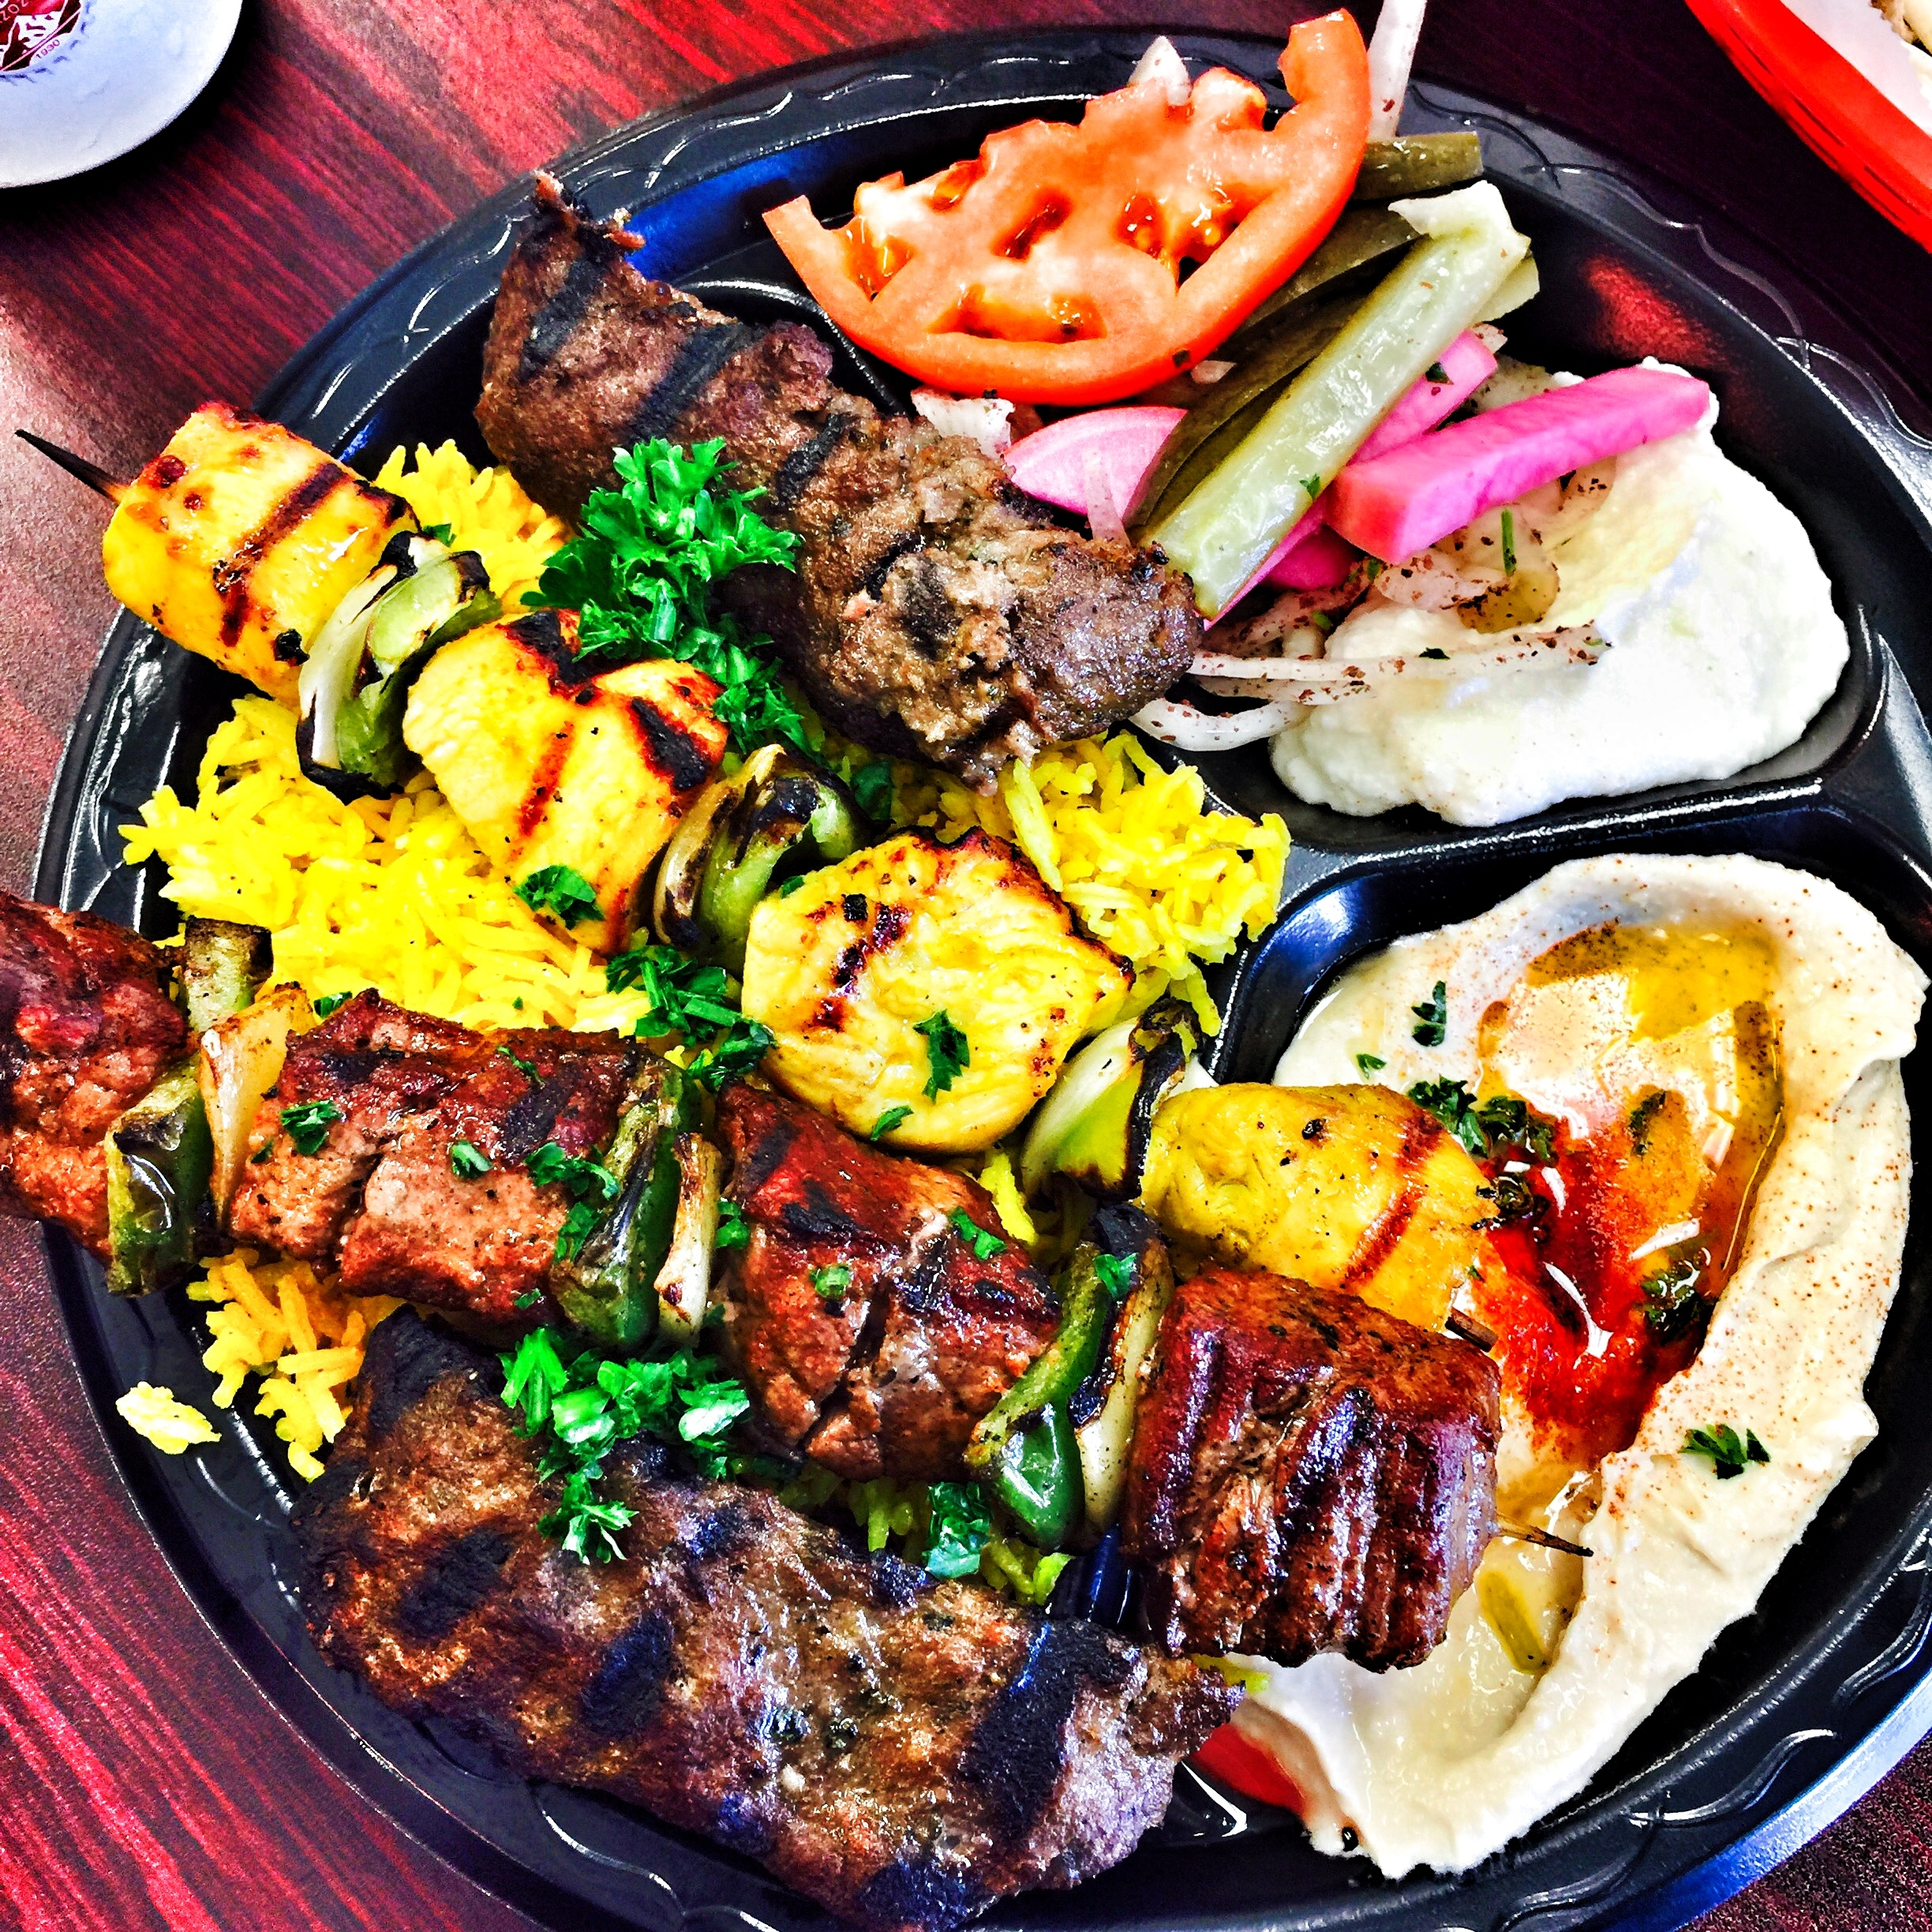 Cedars halal food and deli in east orlando tasty chomps orlando on forumfinder Image collections